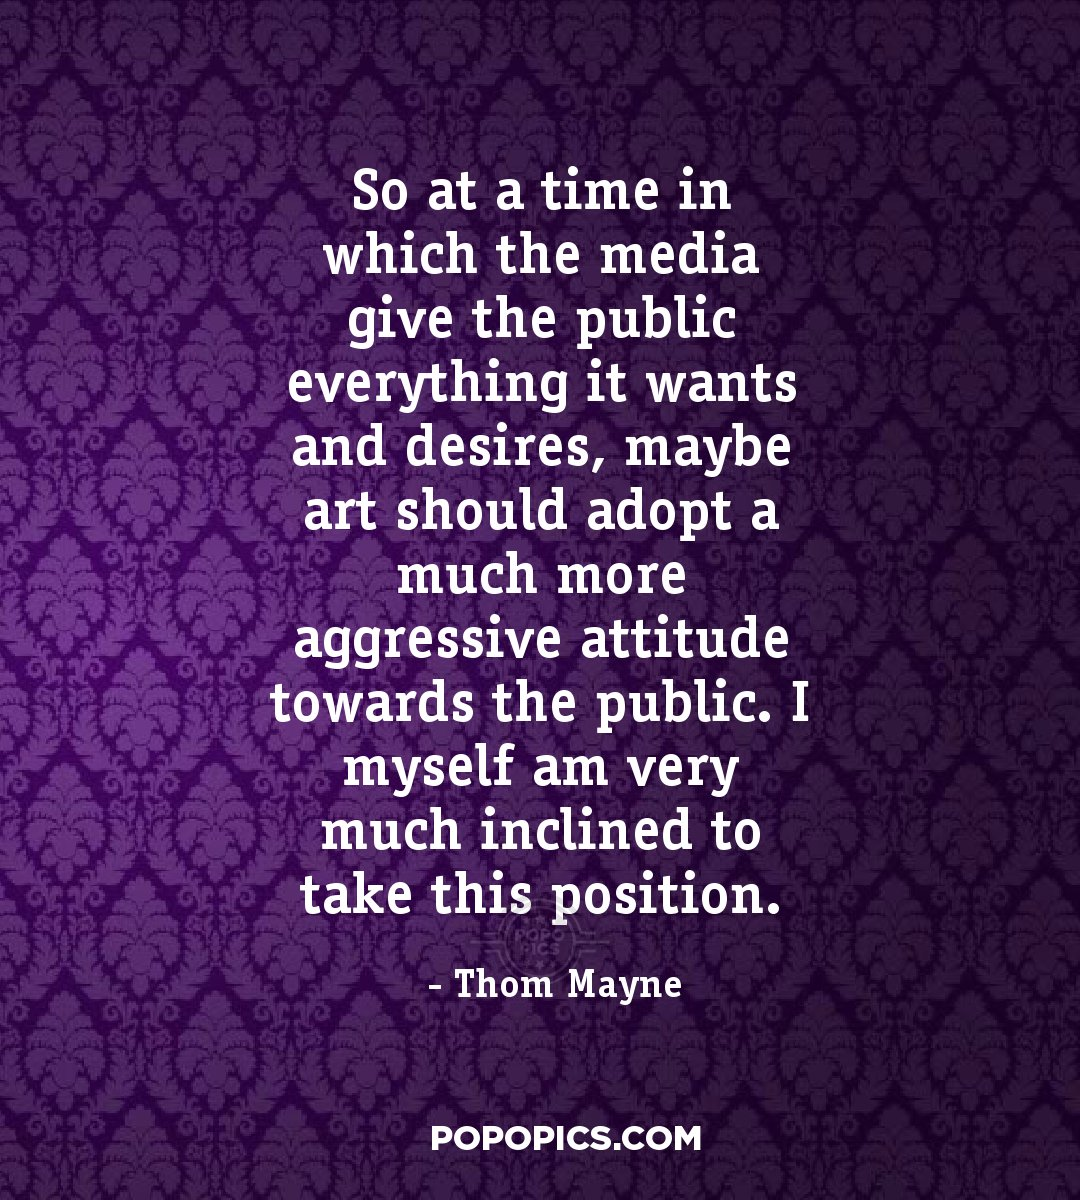 So at a time in which the media give the public ... | 1080 x 1200 jpeg 291kB